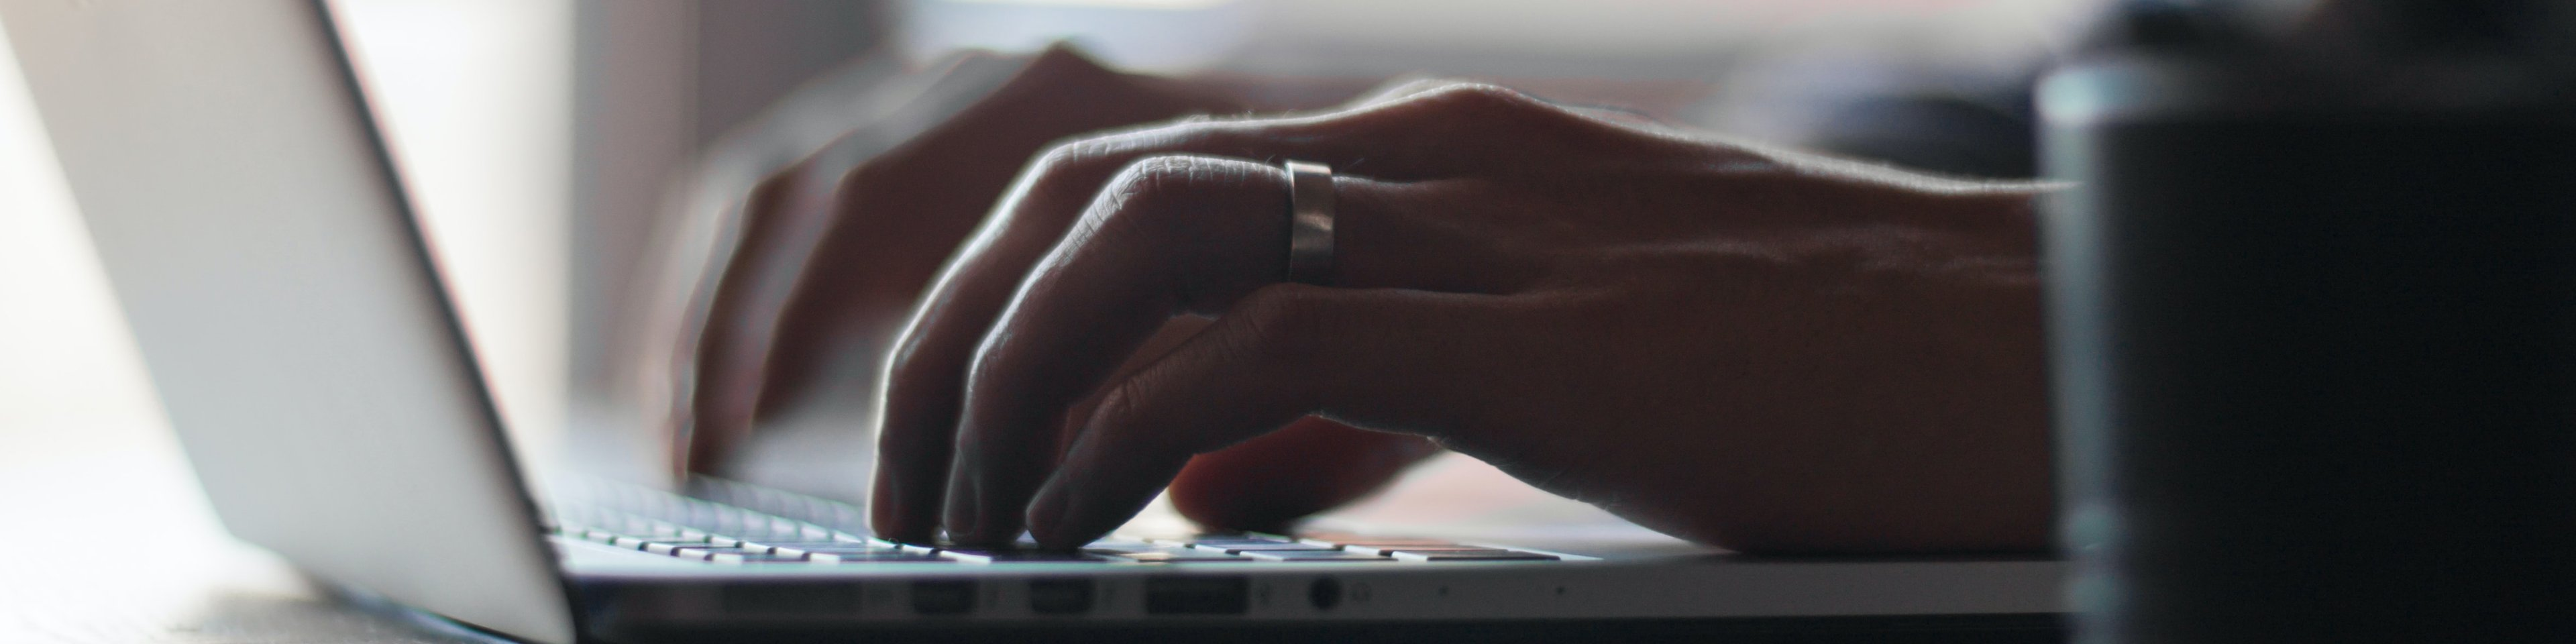 Close up on hands working on a laptop at a table